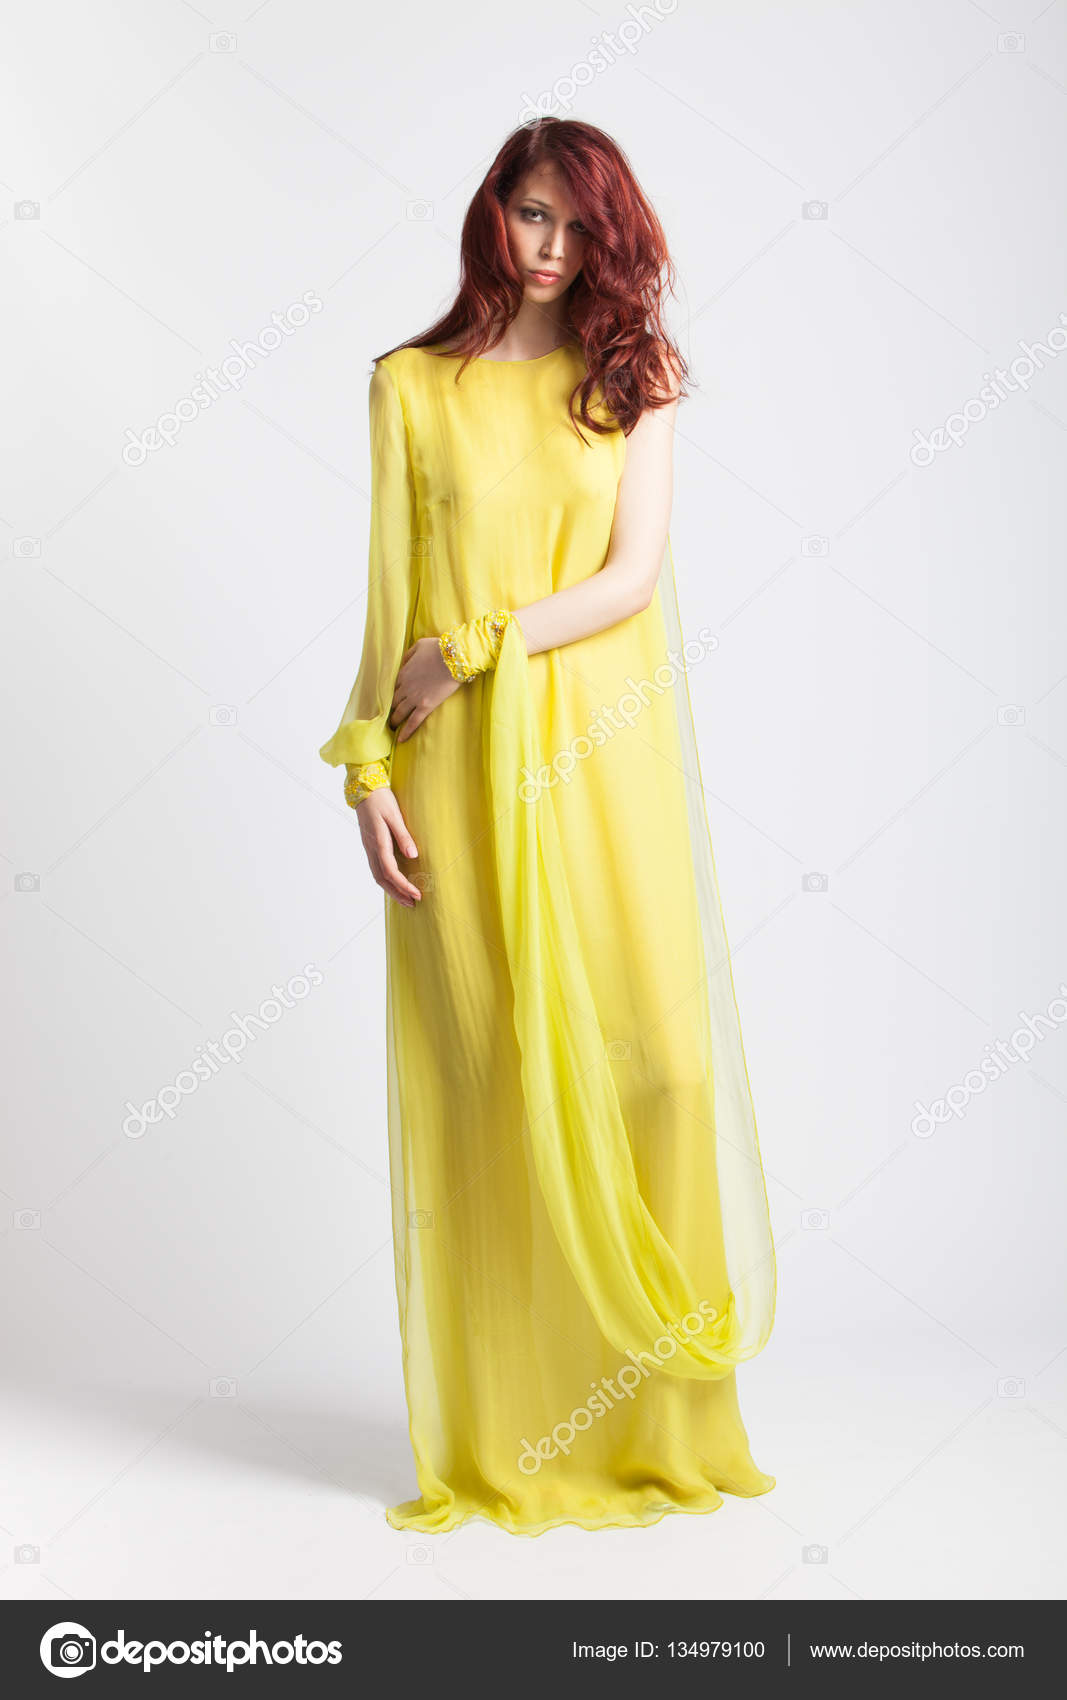 best cheap 3b971 60a91 Ragazza red-haired in vestito elegante lungo giallo — Foto ...